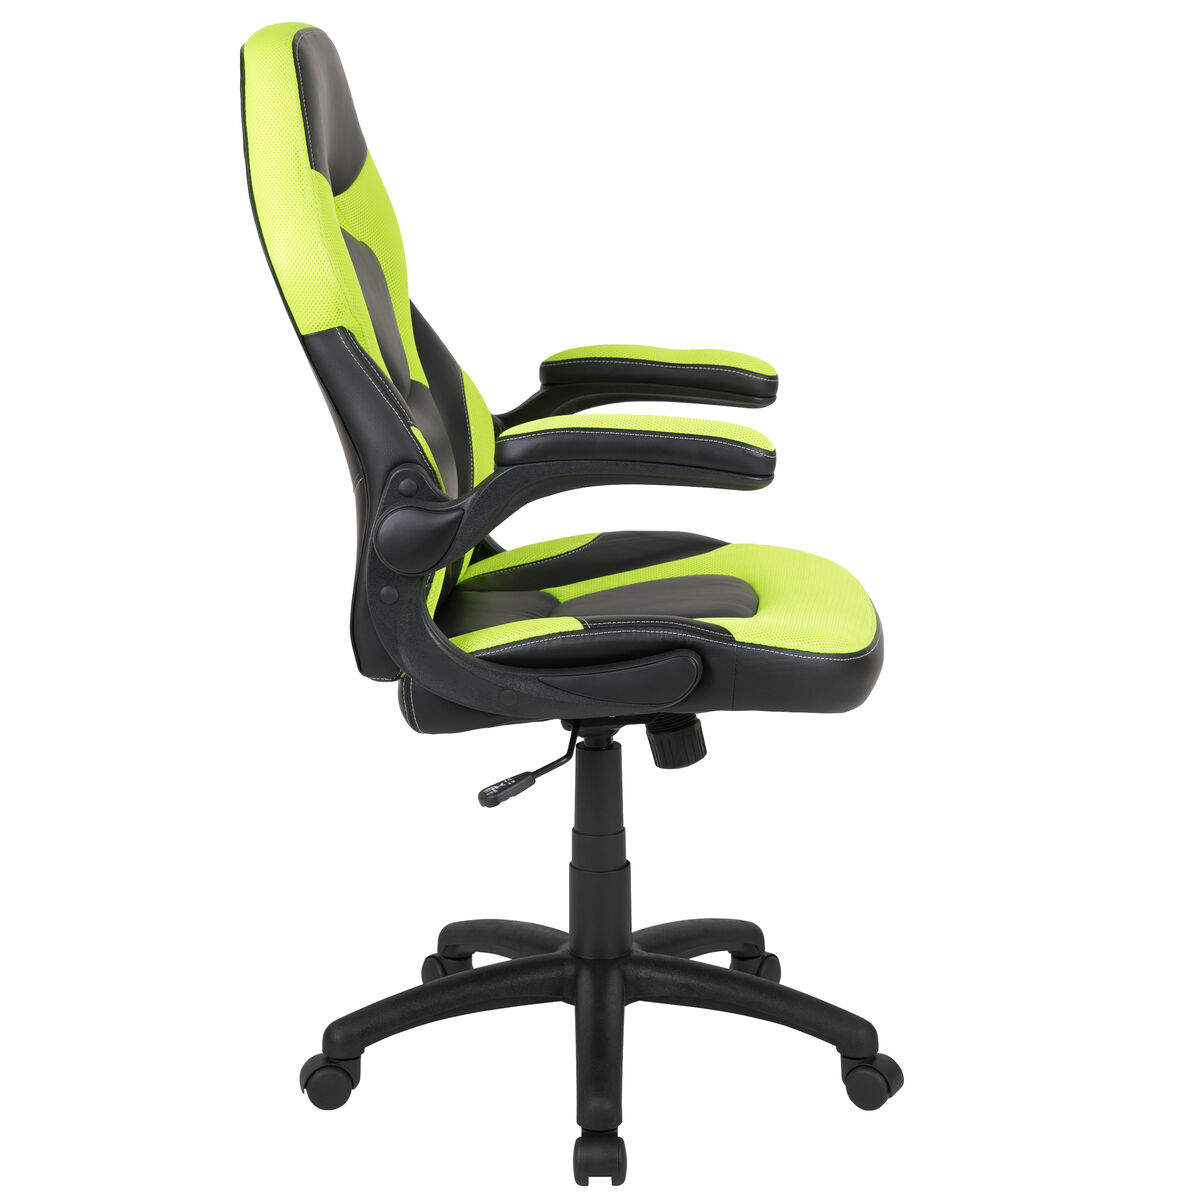 Fabulous X10 Gaming Chair Racing Office Ergonomic Computer Pc Adjustable Swivel Chair With Flip Up Arms Neon Green Black Leathersoft Ocoug Best Dining Table And Chair Ideas Images Ocougorg